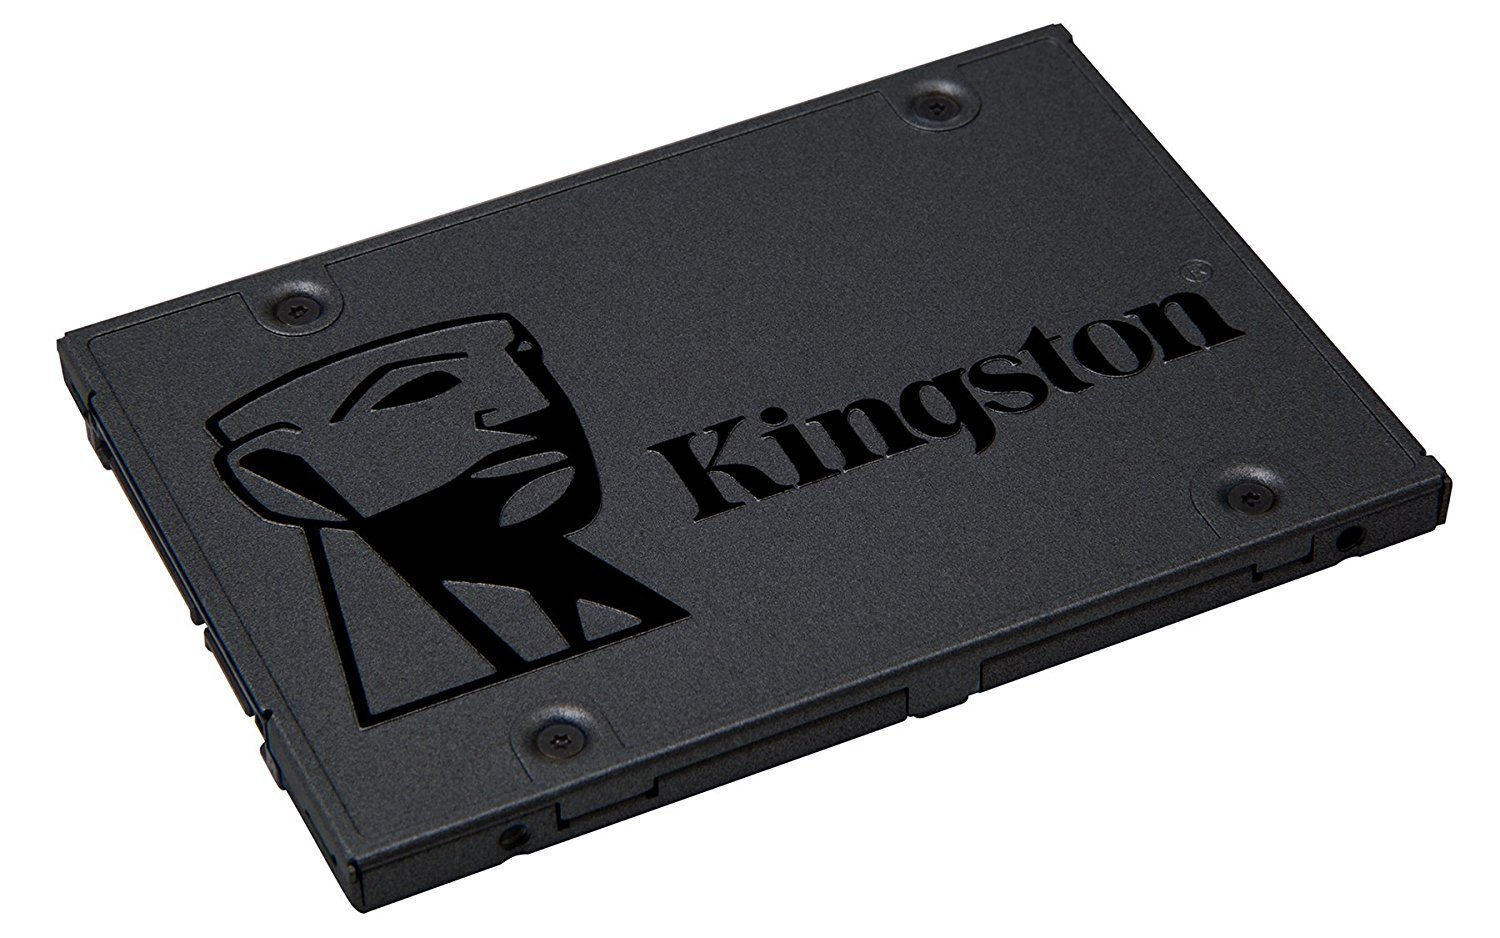 Kingston SSD A400 – Disco Duro sólido, 2.5″, SATA 3, 120 GB